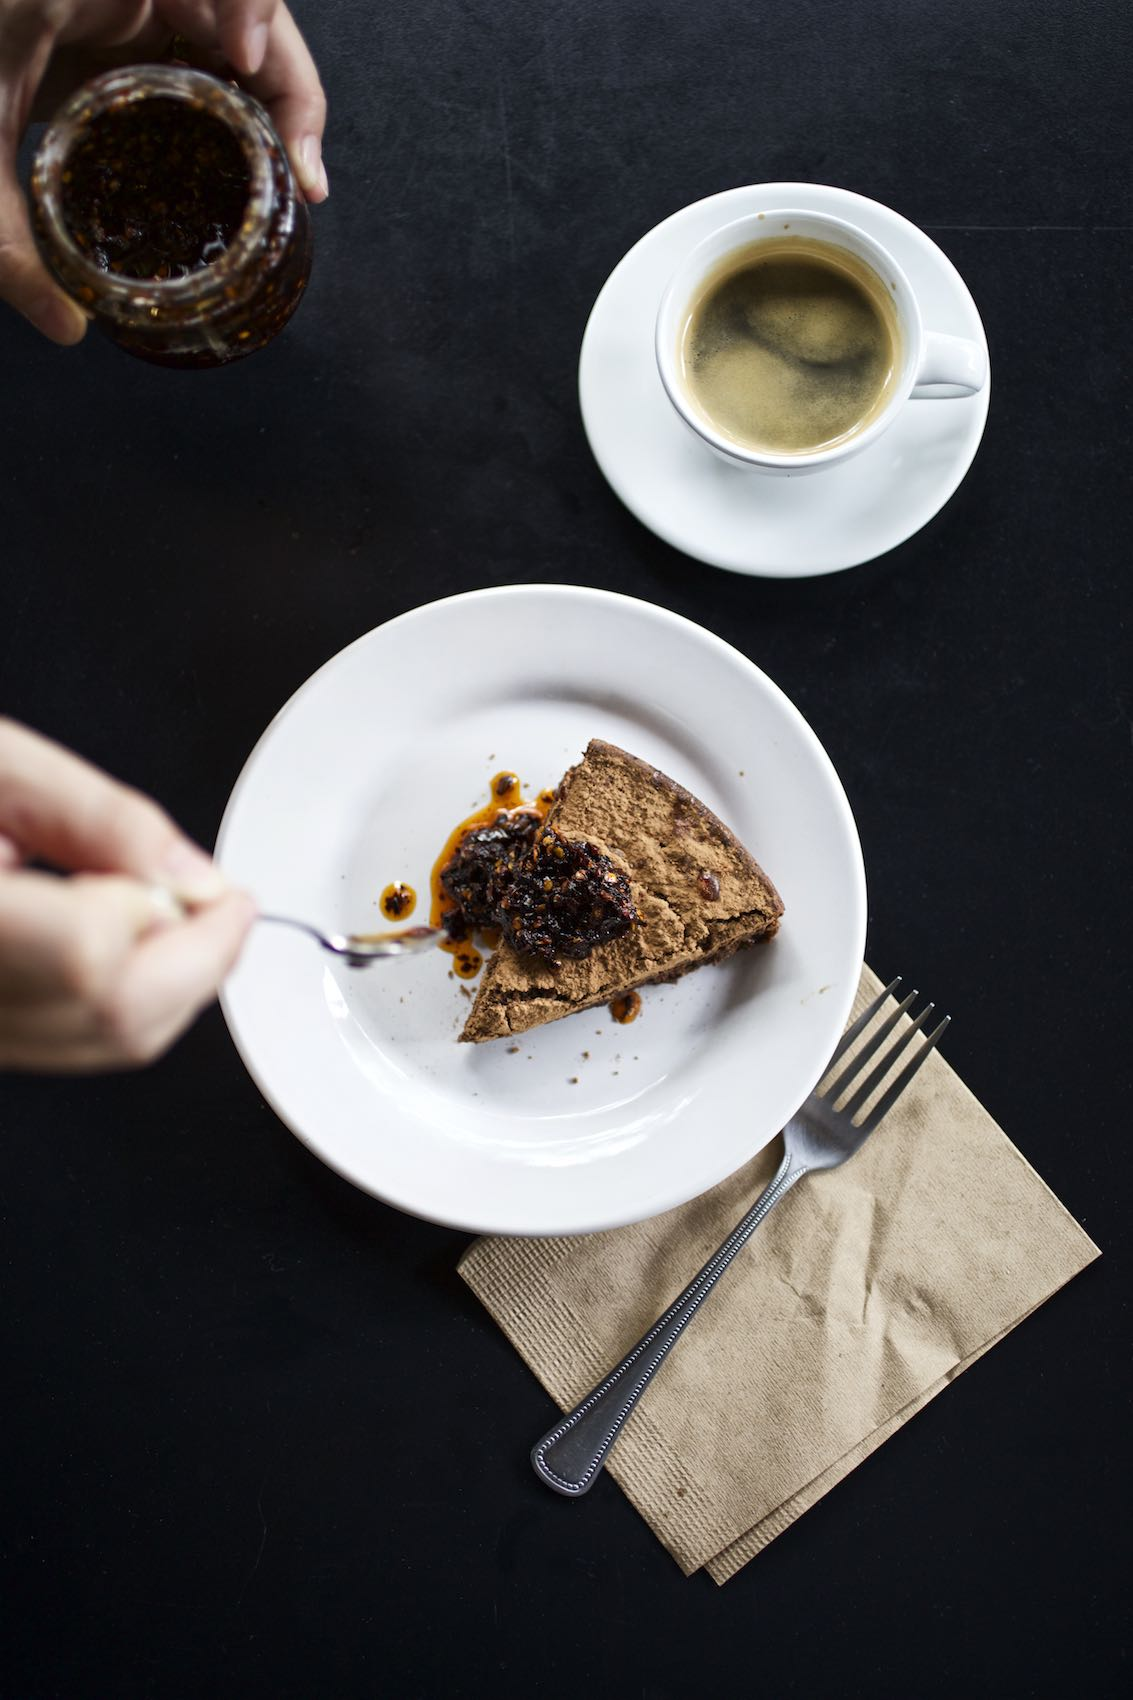 Jody Horton Photography - Cafe snack garnished with sauce and espresso.